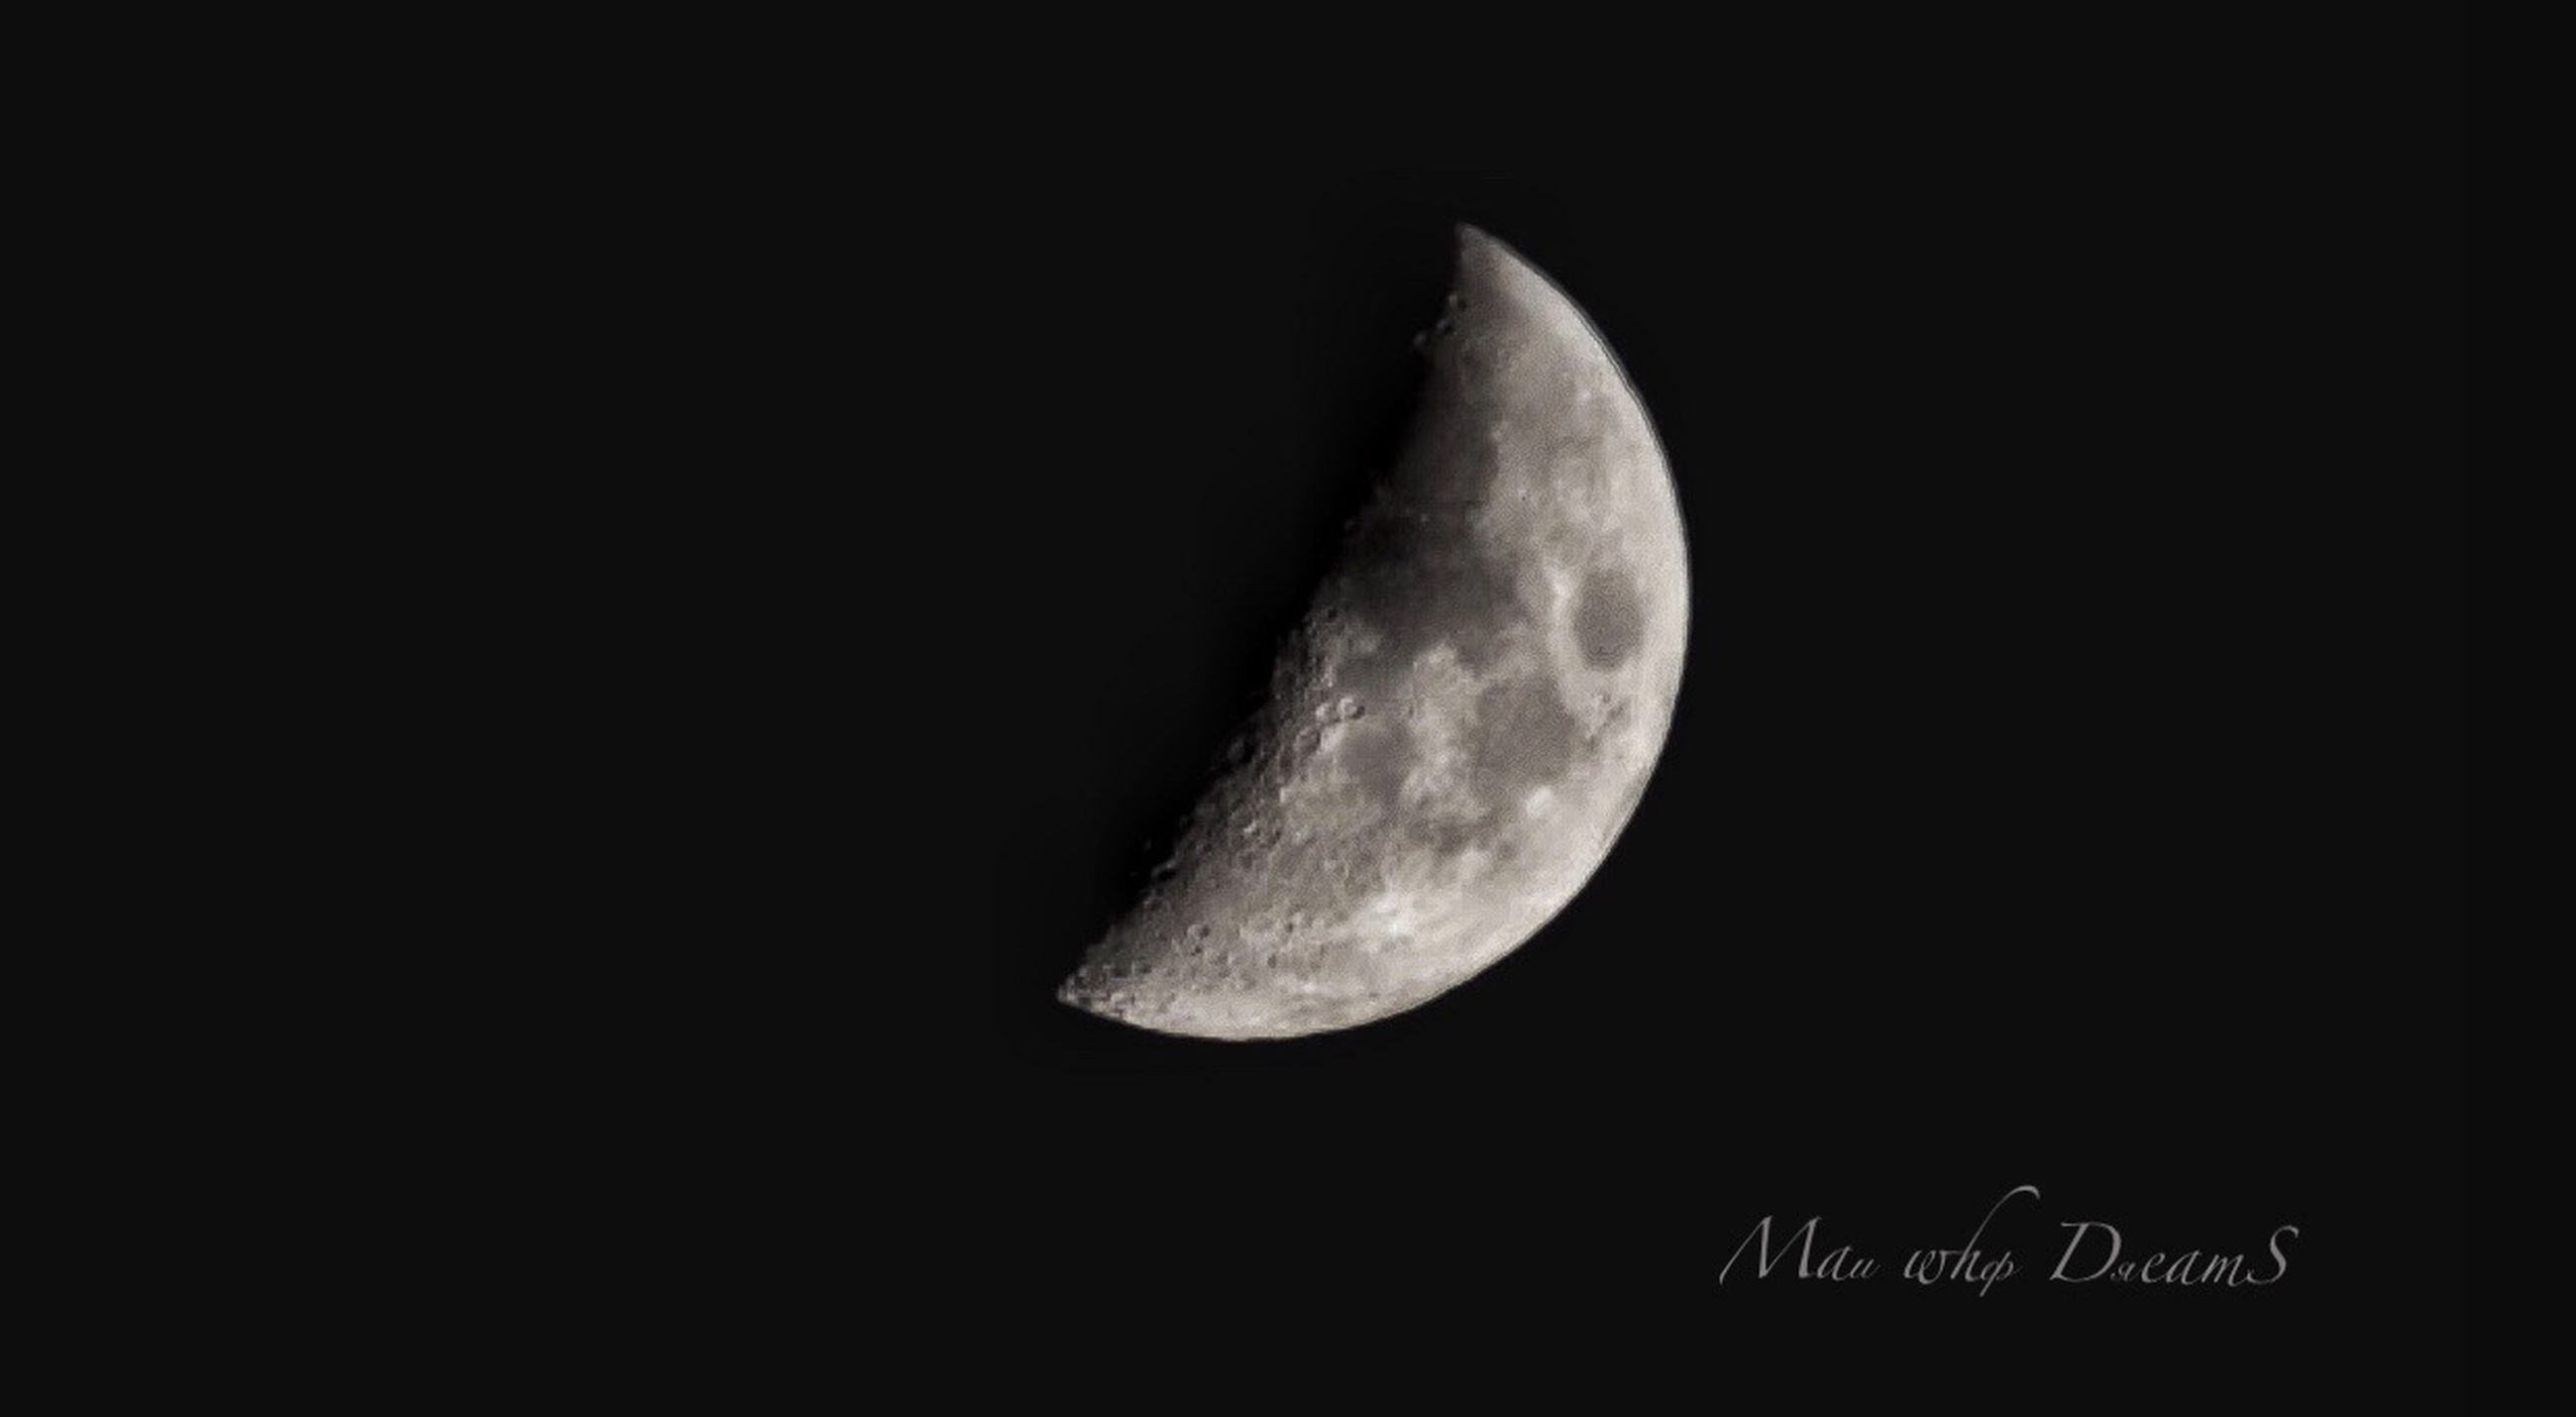 astronomy, moon, space, night, sky, beauty in nature, scenics - nature, half moon, nature, copy space, moon surface, low angle view, no people, planetary moon, crescent, tranquility, tranquil scene, space exploration, dark, outdoors, astrology, moonlight, space and astronomy, eclipse